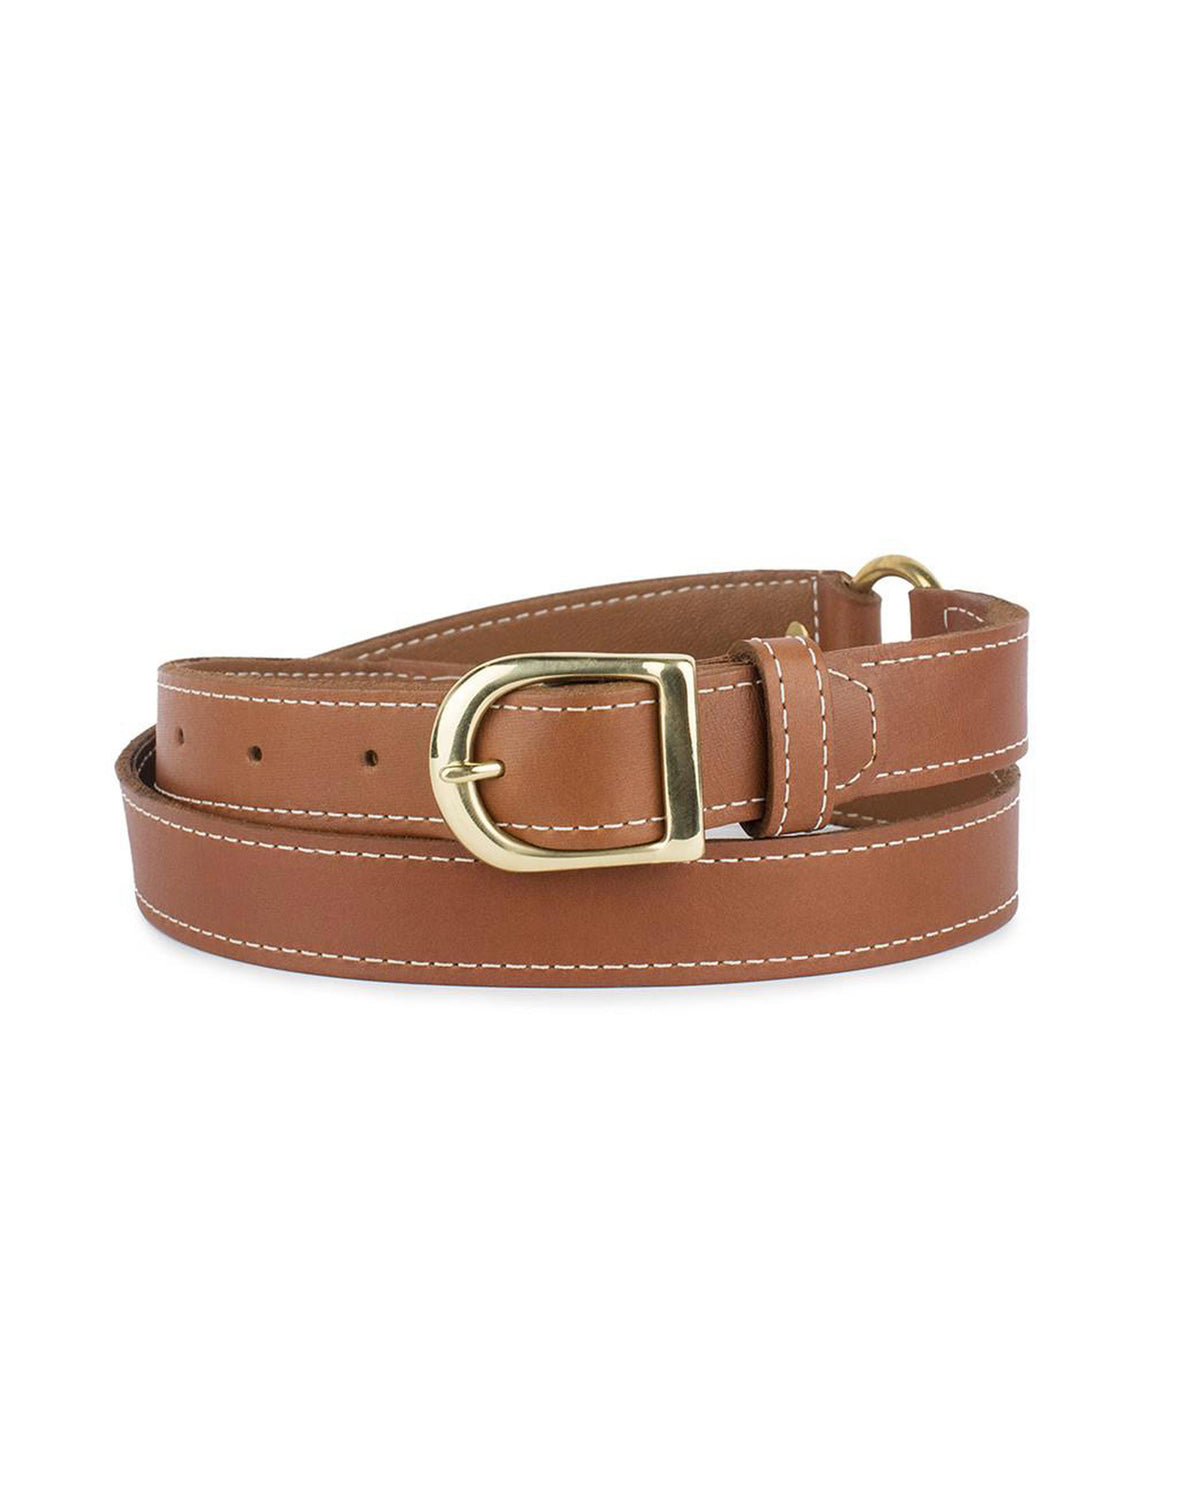 "1"" RING BELT in Cognac Napa"